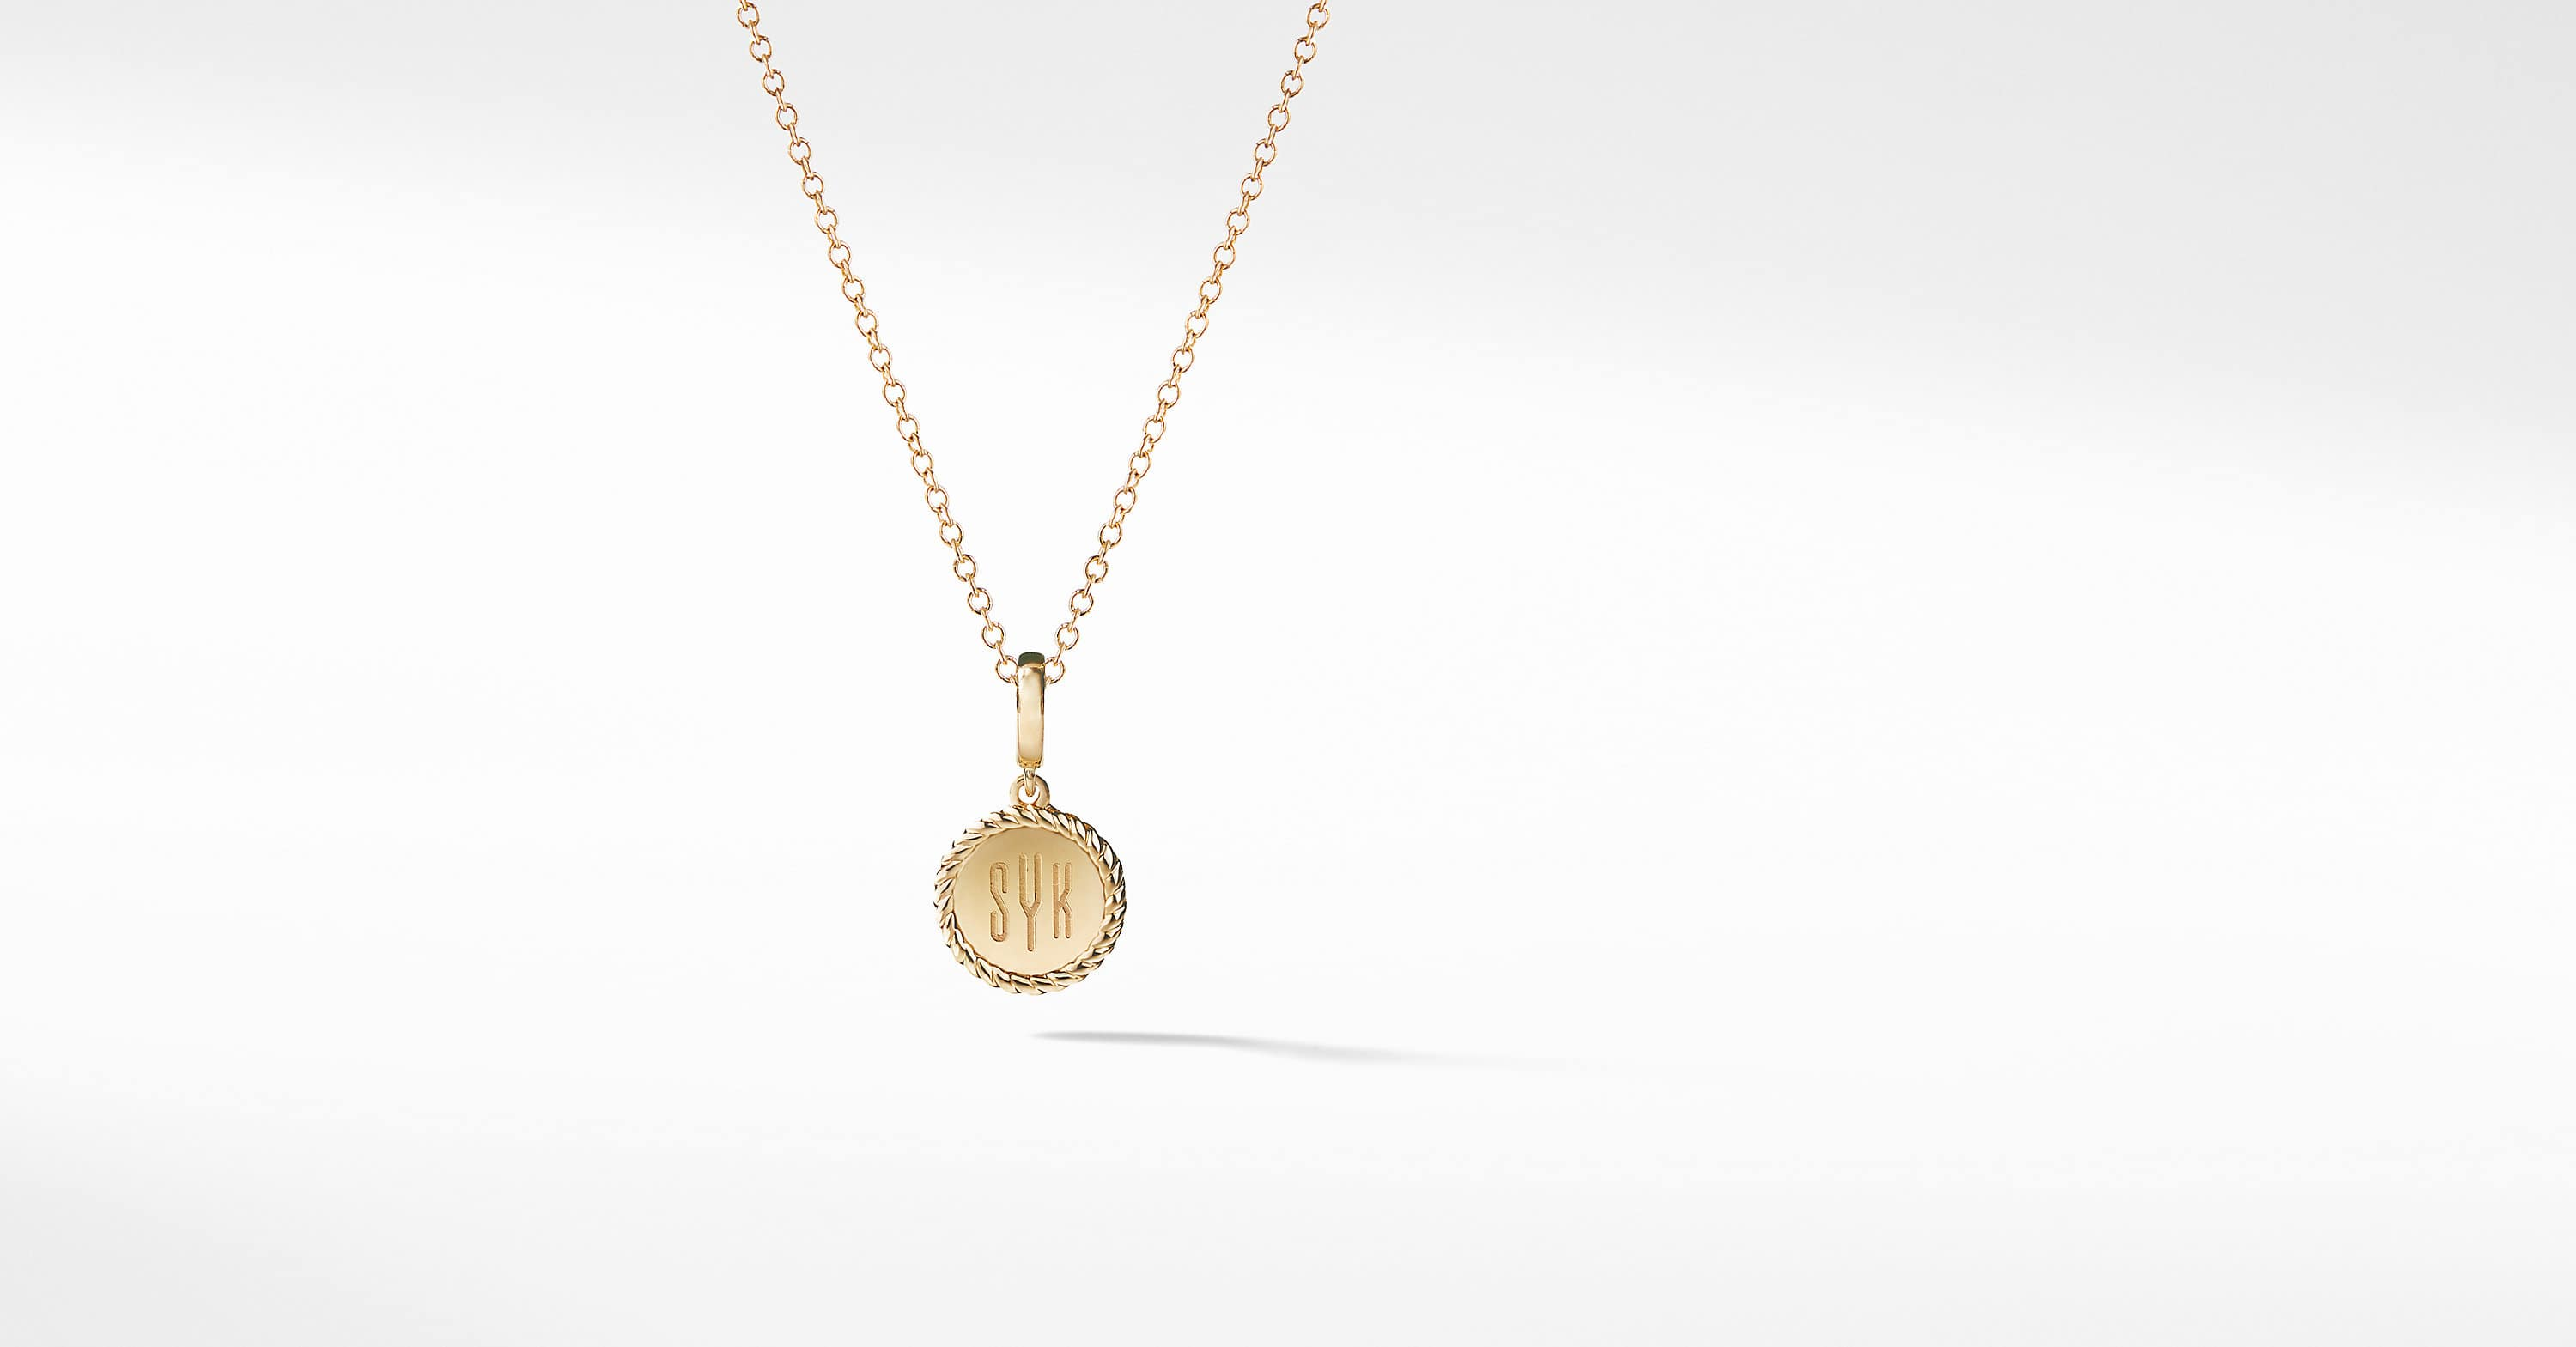 Cable Collectibles Engravable Pendant Necklace in 18K Yellow Gold